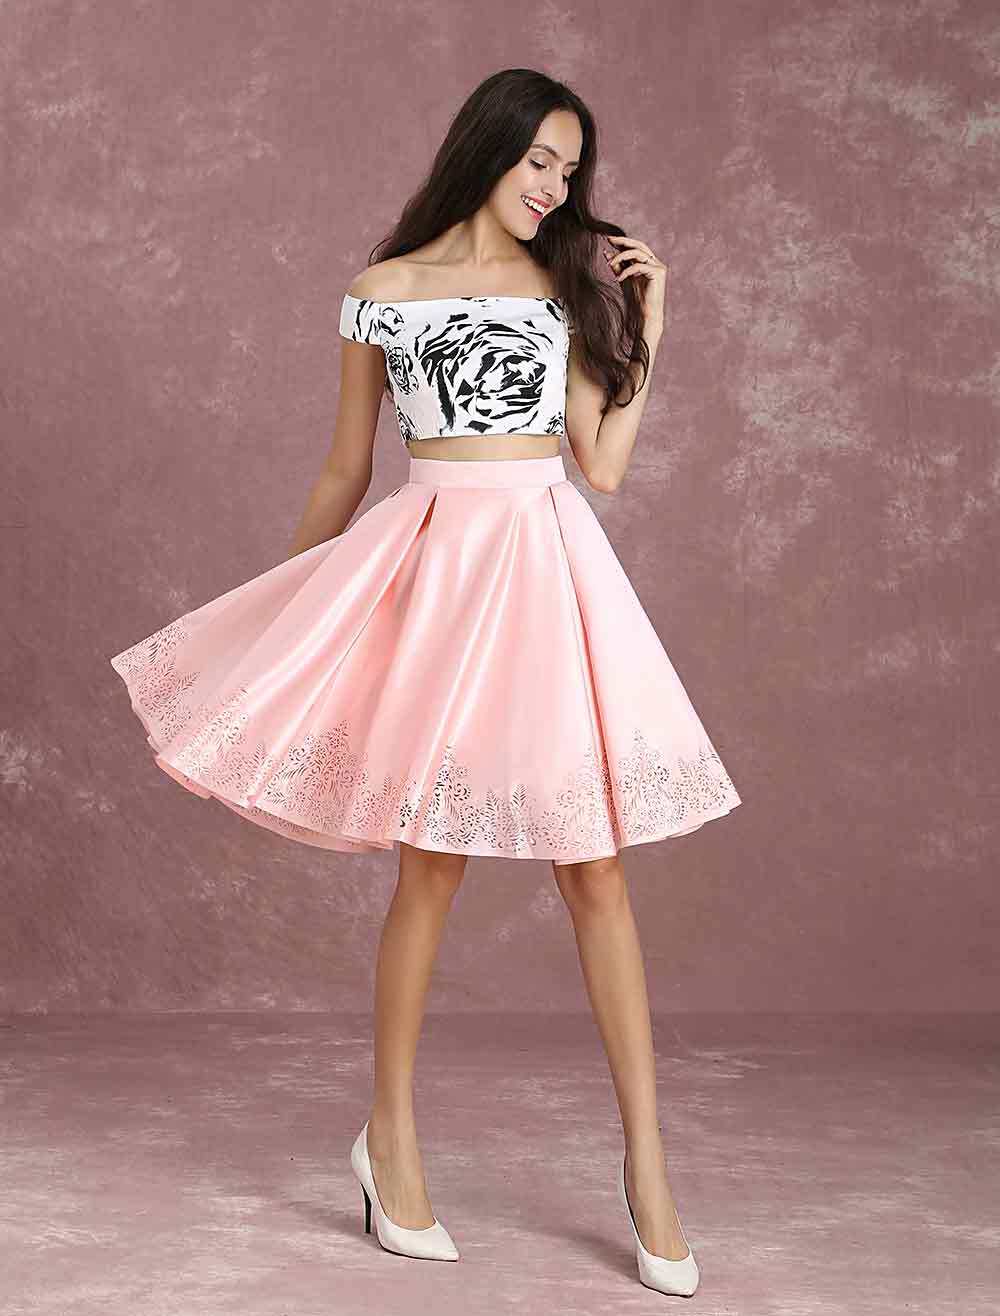 Buy Two Piece Homecoming Dress Printed Off The Shoulder Prom Dress Crop Top Satin A Line Knee Length Party Dress for $106.24 in Milanoo store